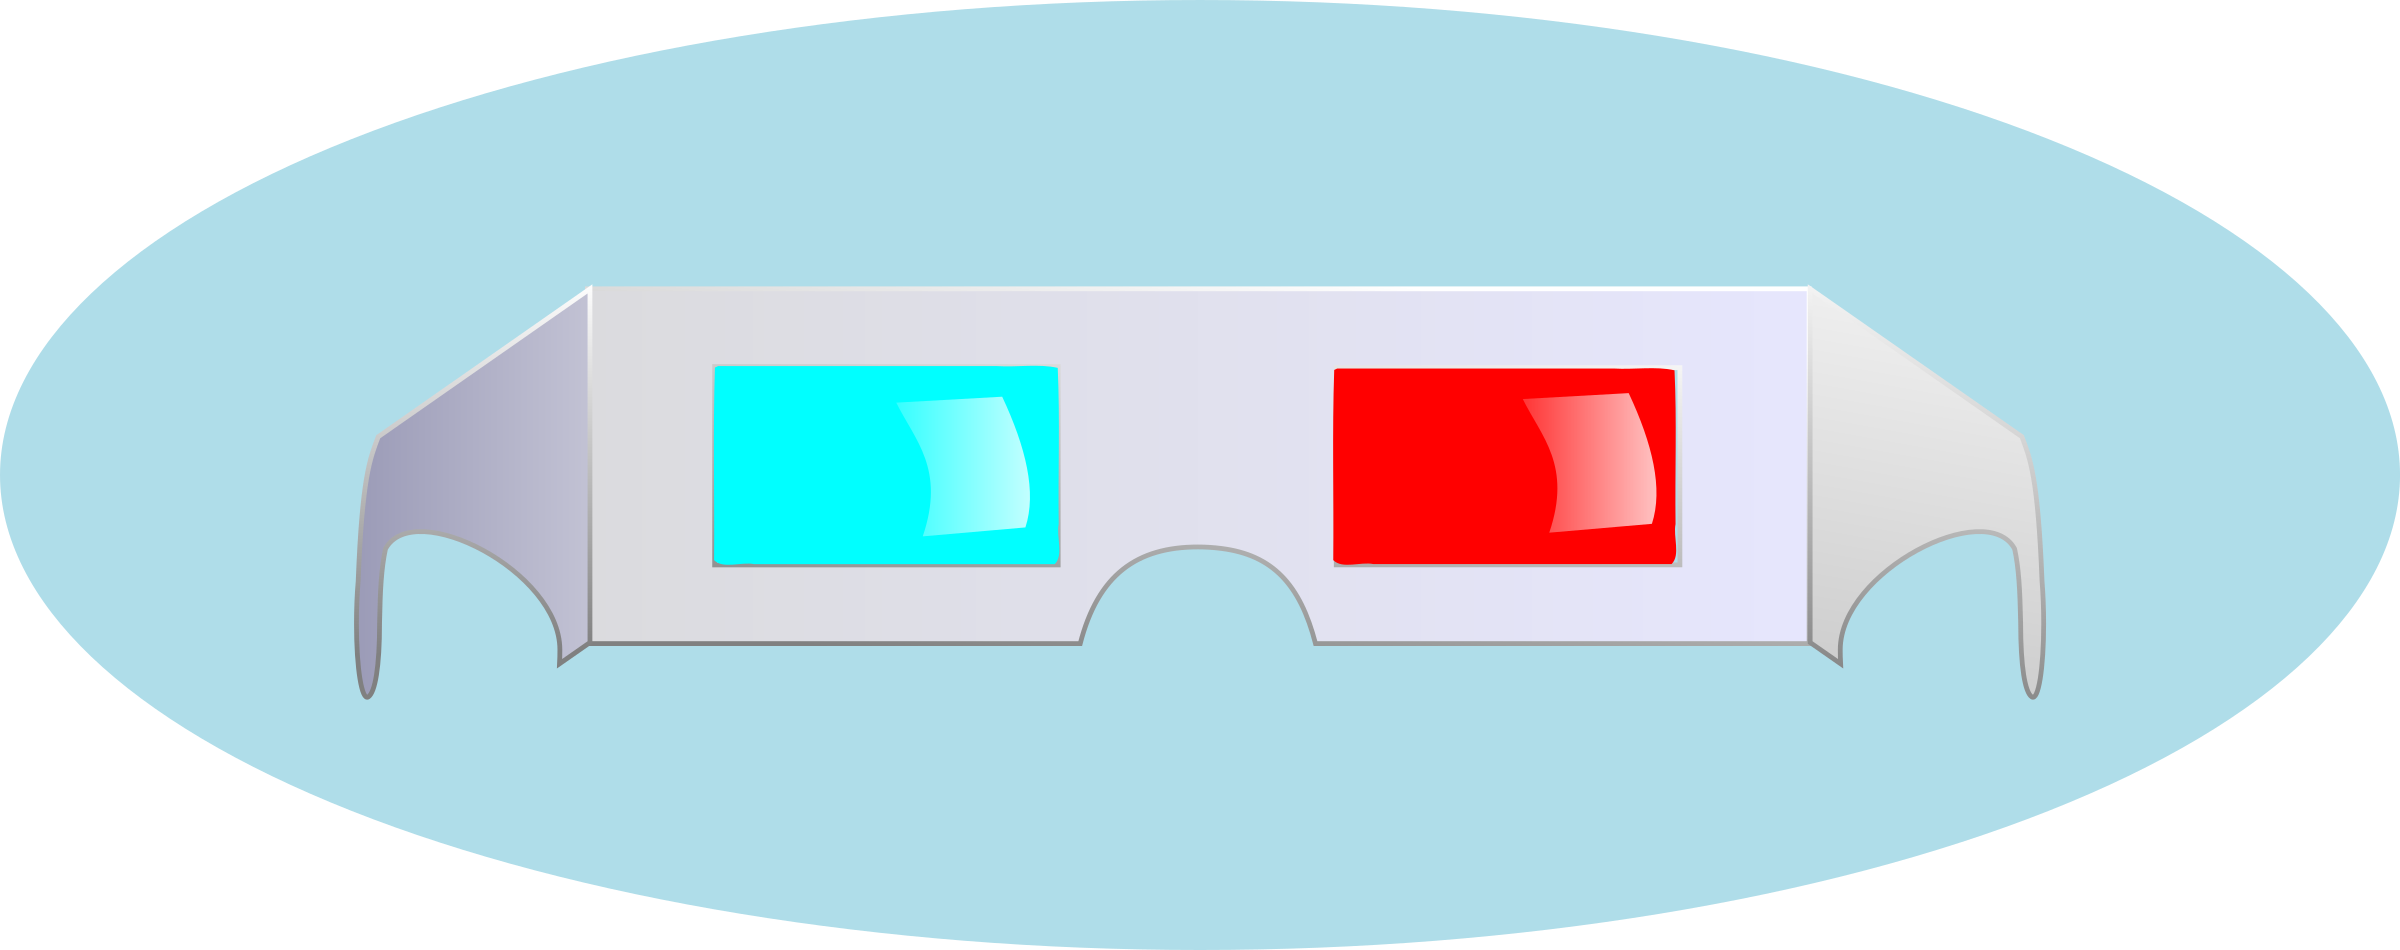 3D Glasses by studio_hades